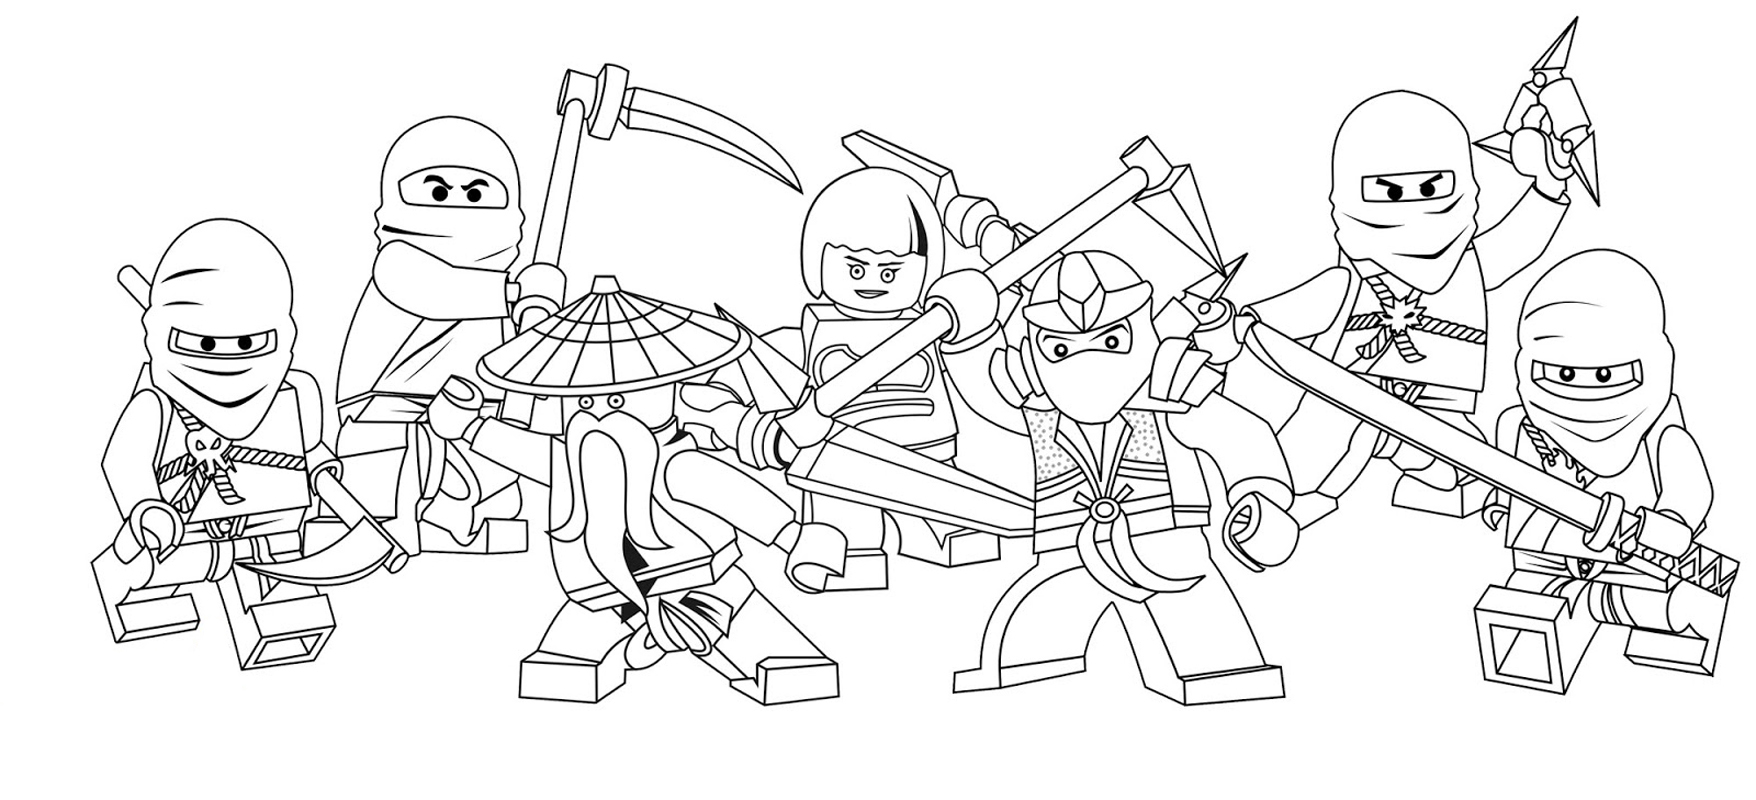 lego coloring pages to print free ninjago lego ninja go coloring page print for free to print pages coloring free lego